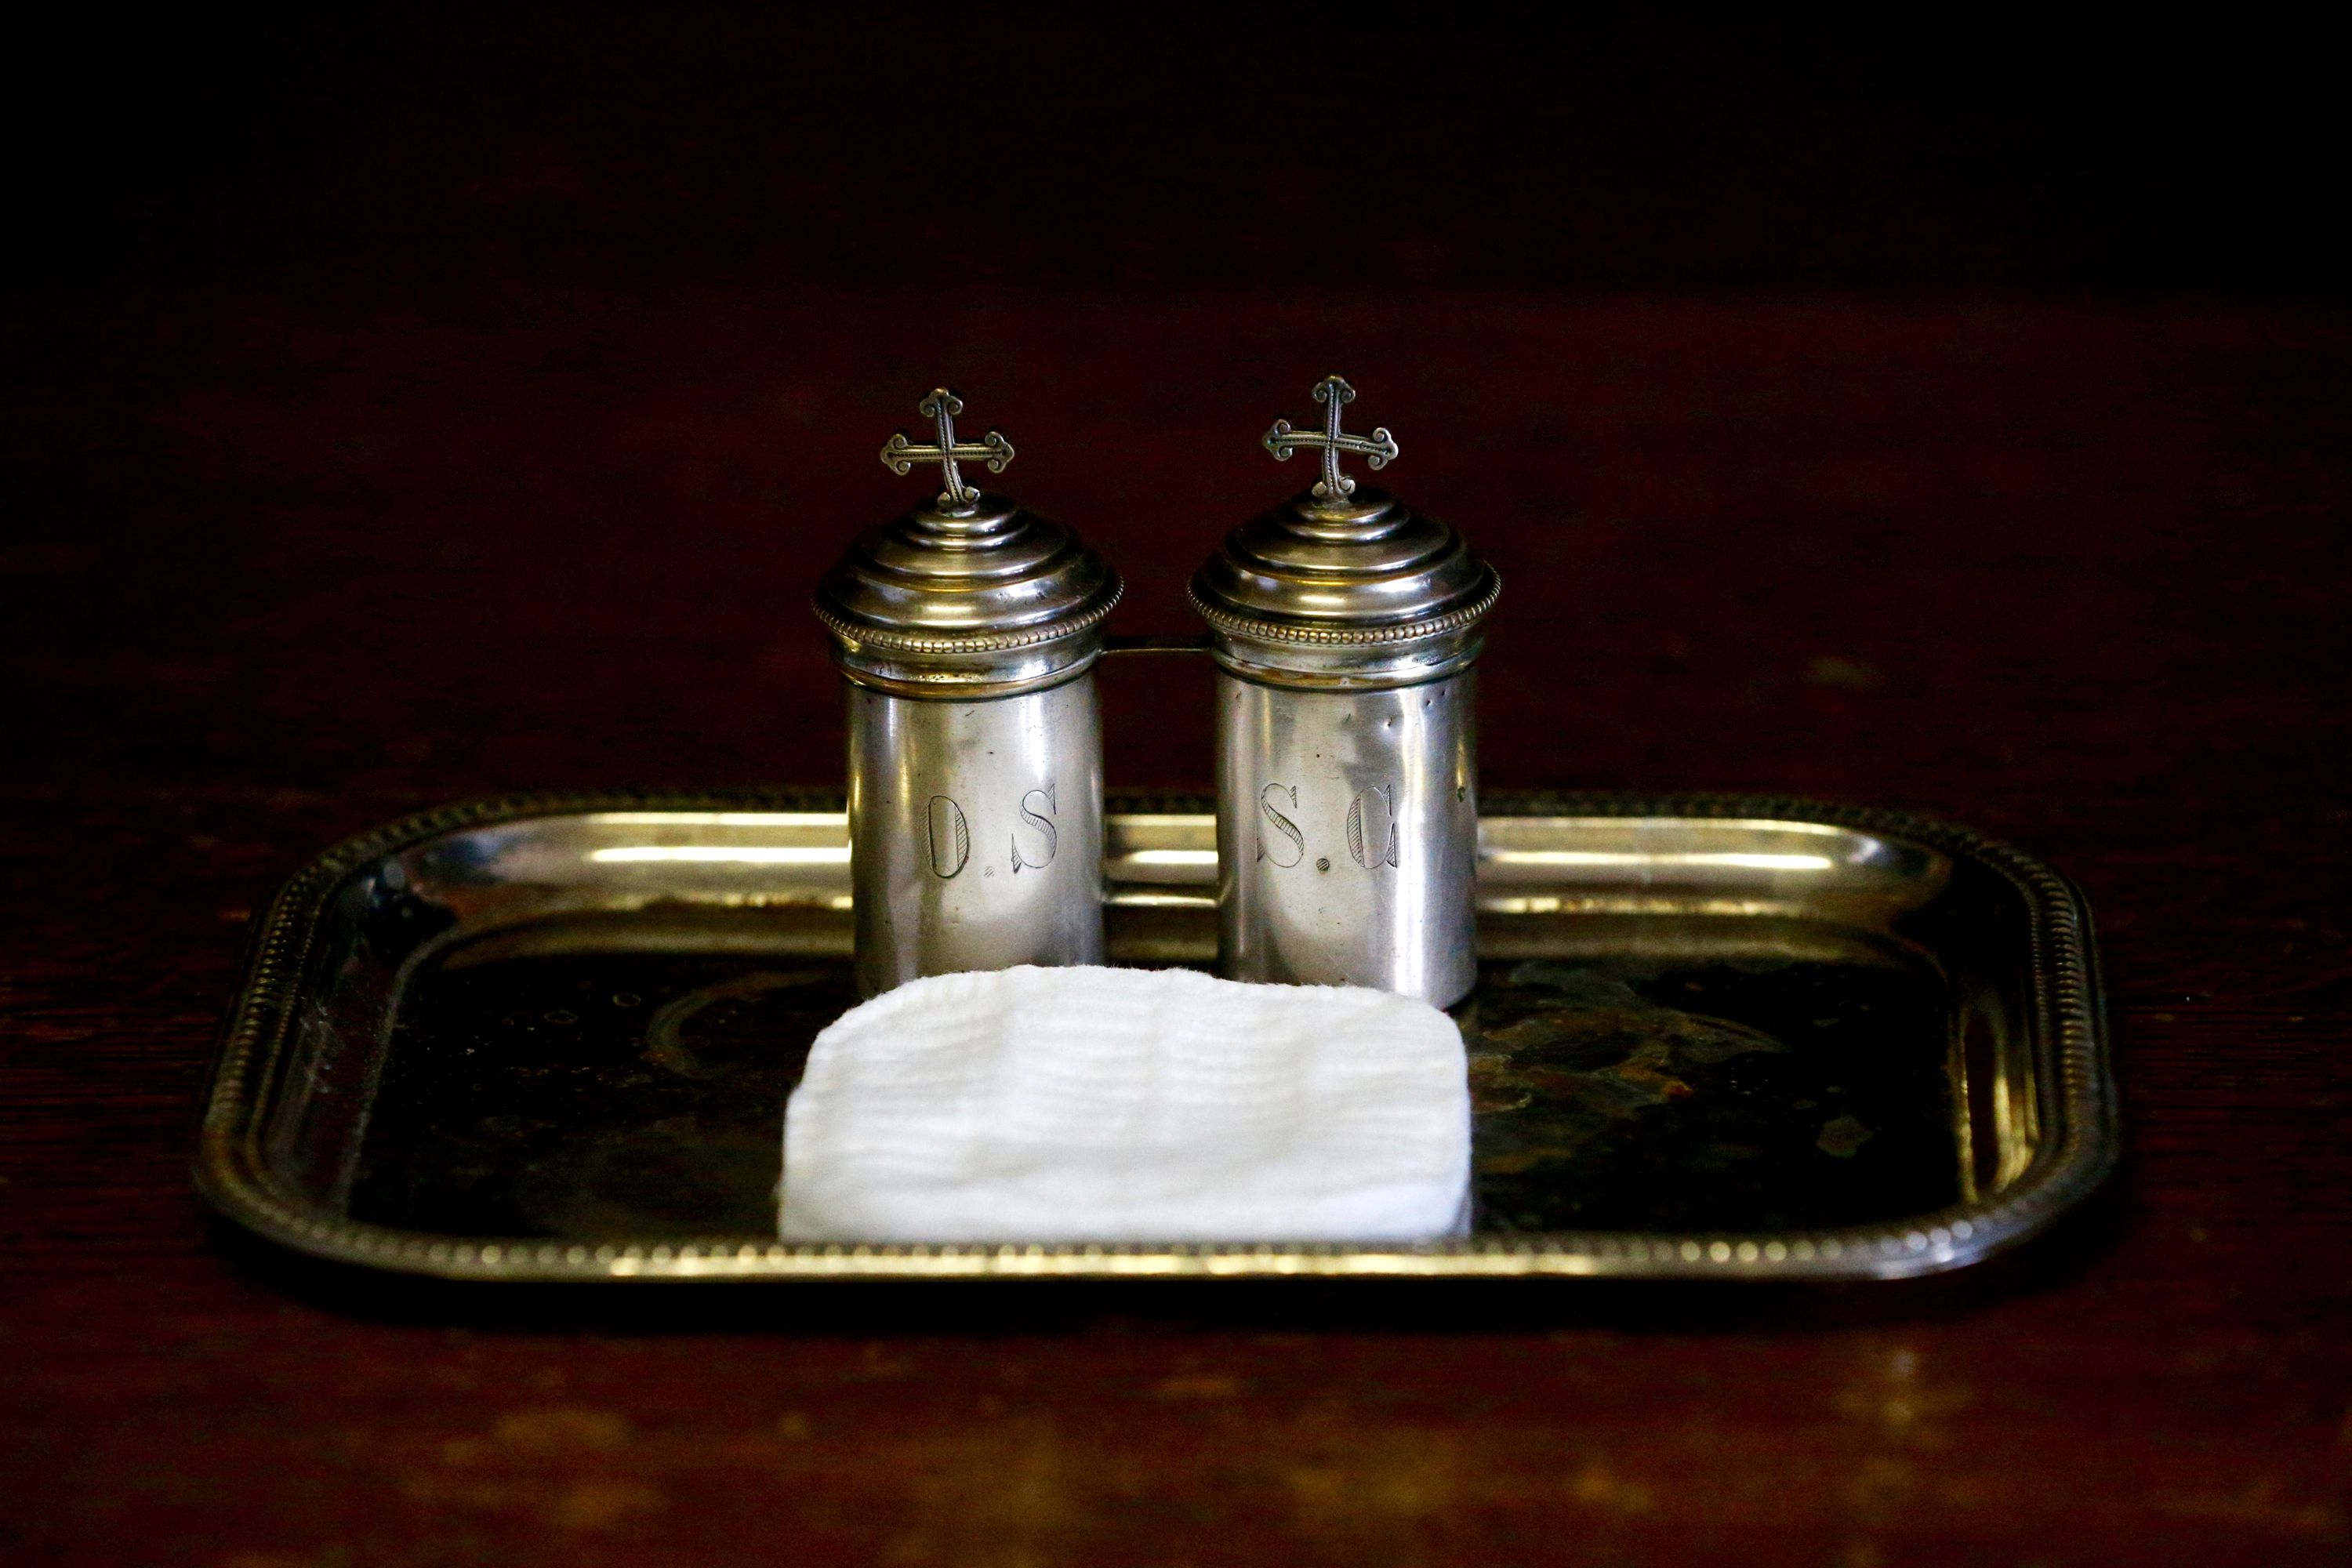 The sacrament of baptism in the catholic church containers of chrism biocorpaavc